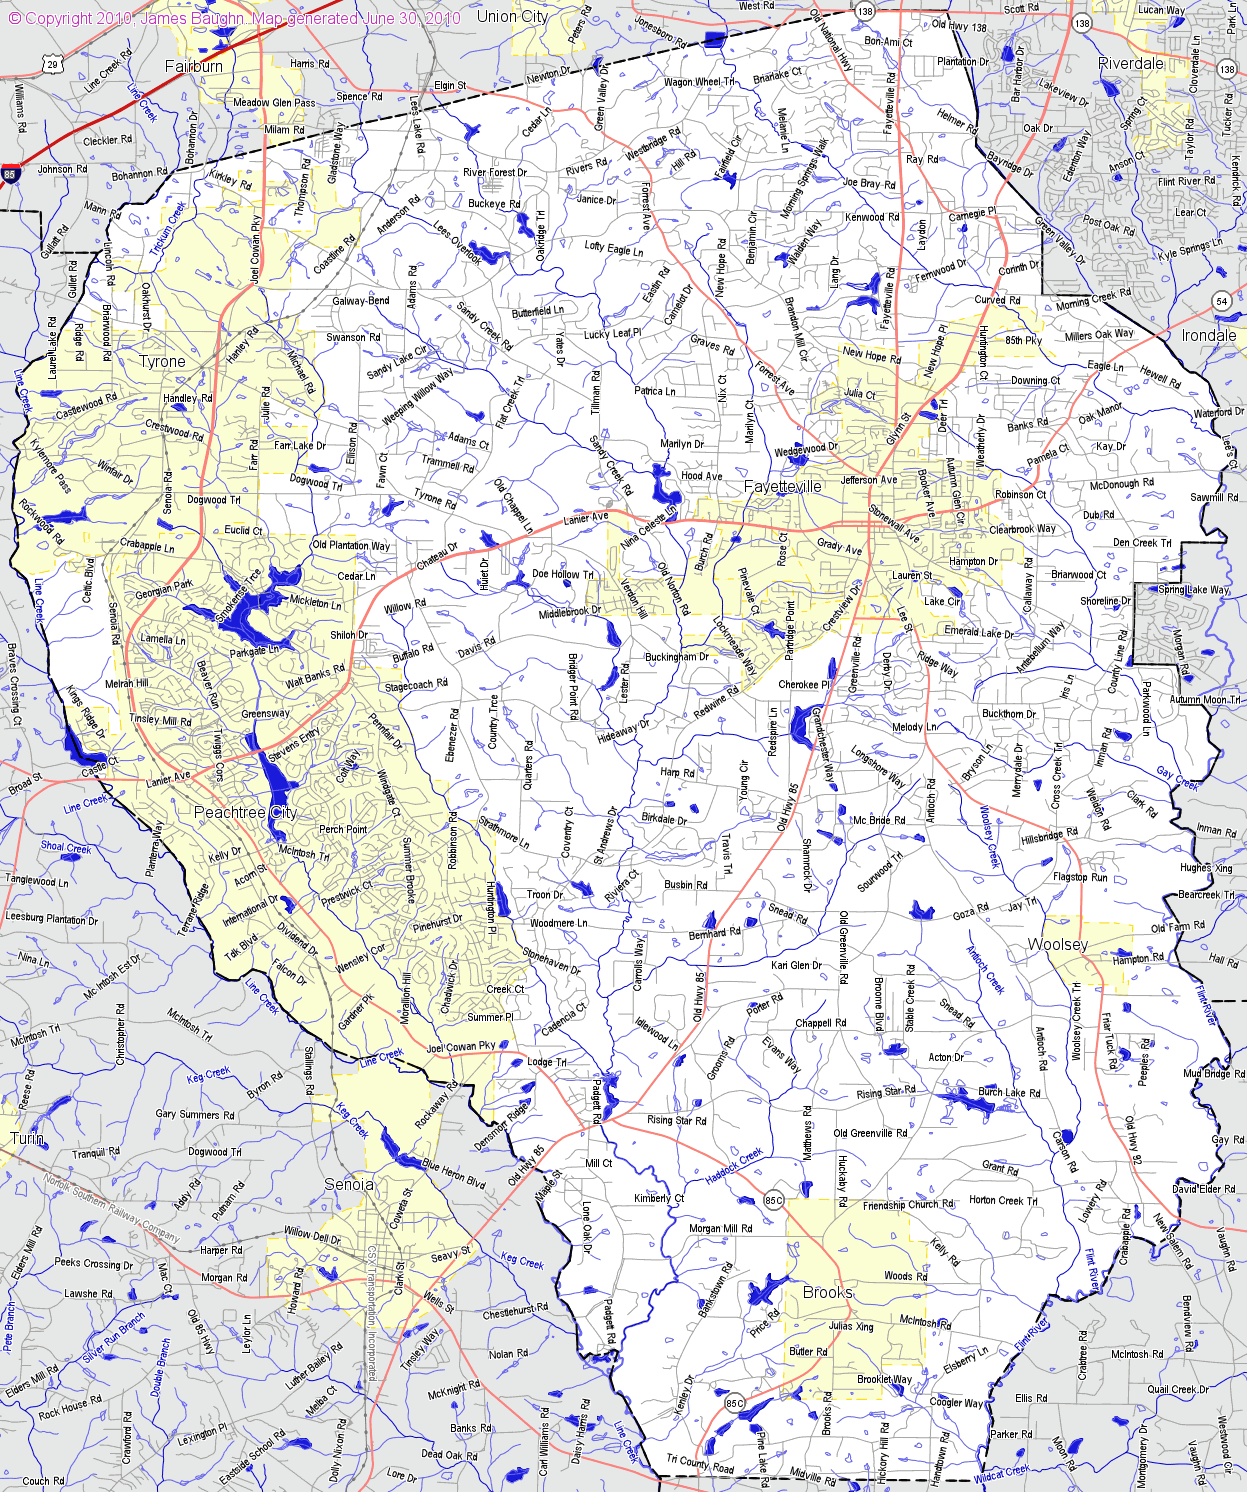 County Map Of Georgia With Roads.Landmarkhunter Com Fayette County Georgia